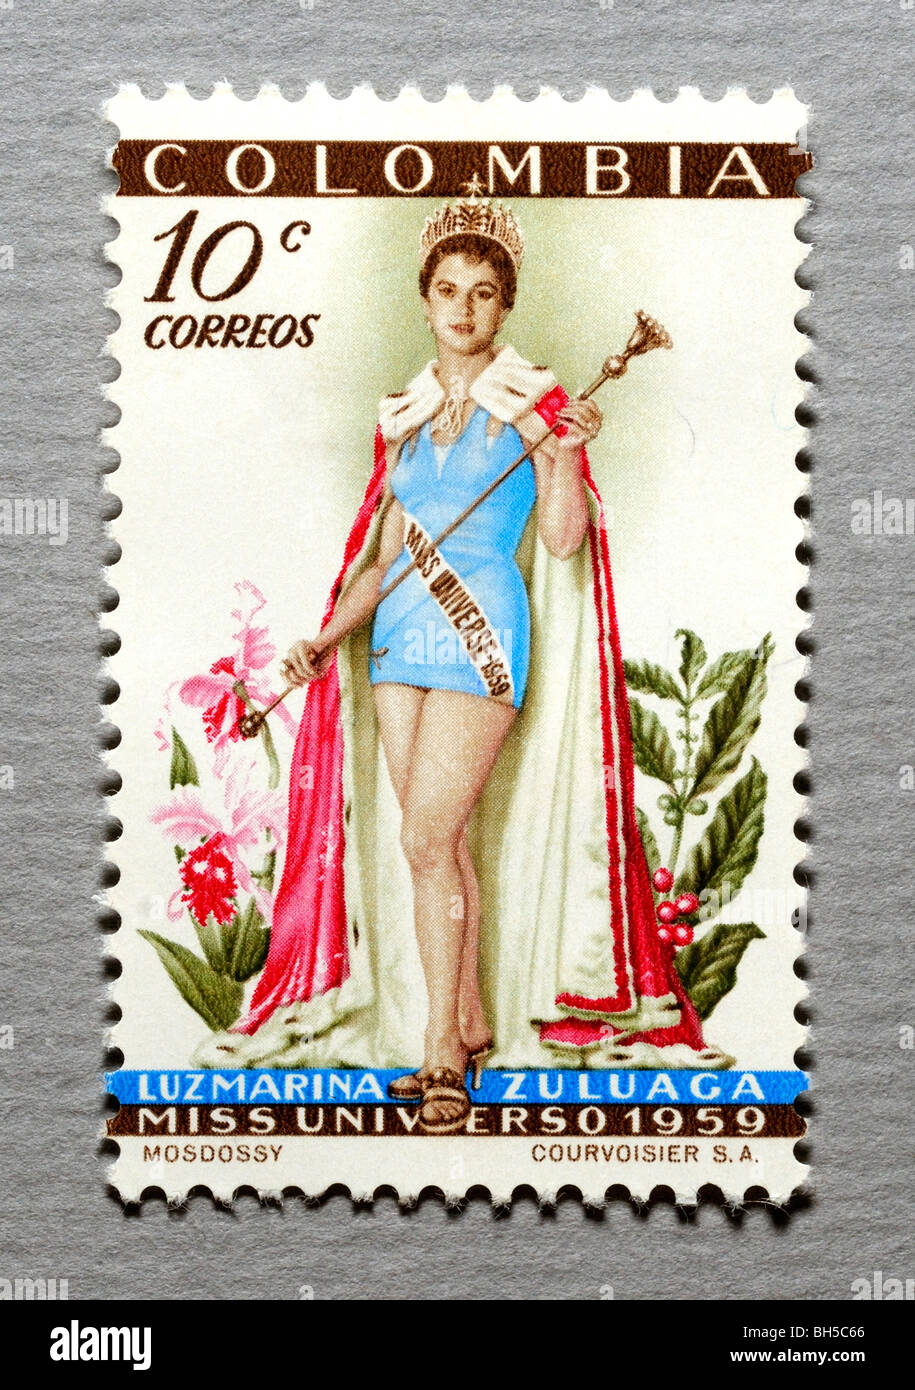 Colombia Postage Stamp. - Stock Image